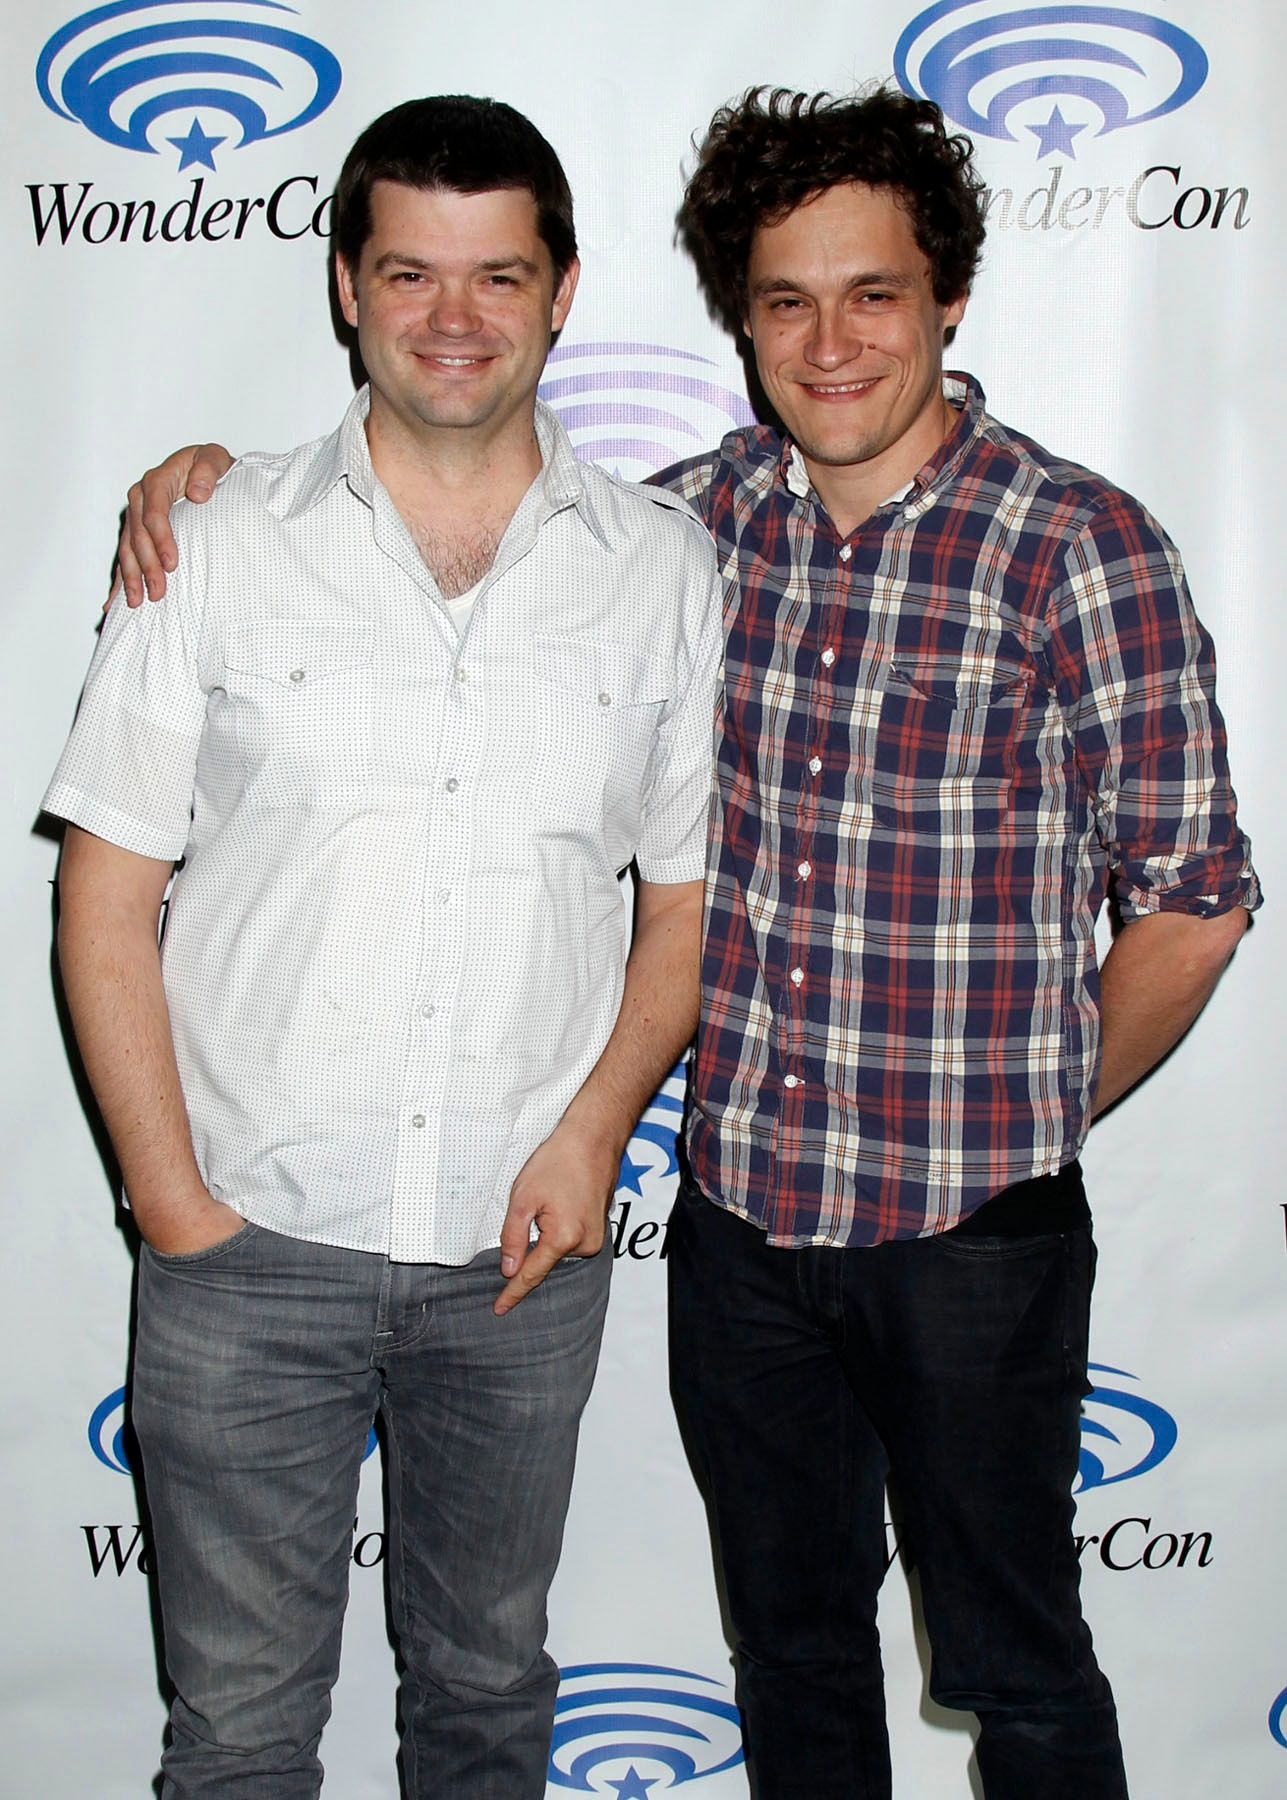 phil lord and chris miller imdbphil lord and christopher miller, phil lord twitter, phil lord instagram, phil lord and christopher miller movies, phil lord imdb, phil lord net worth, phil lord and chris miller movies, phil lord of the flies, phil lord and chris miller the flash, phil lord the flash, phil lord tweet, phil lord miller, phil lord star wars, phil lord irene neuwirth, phil lord and chris miller imdb, phil lord director, phil lord lego oscar, phil lord biography, phil lord e christopher miller, phil lord chris miller easy a